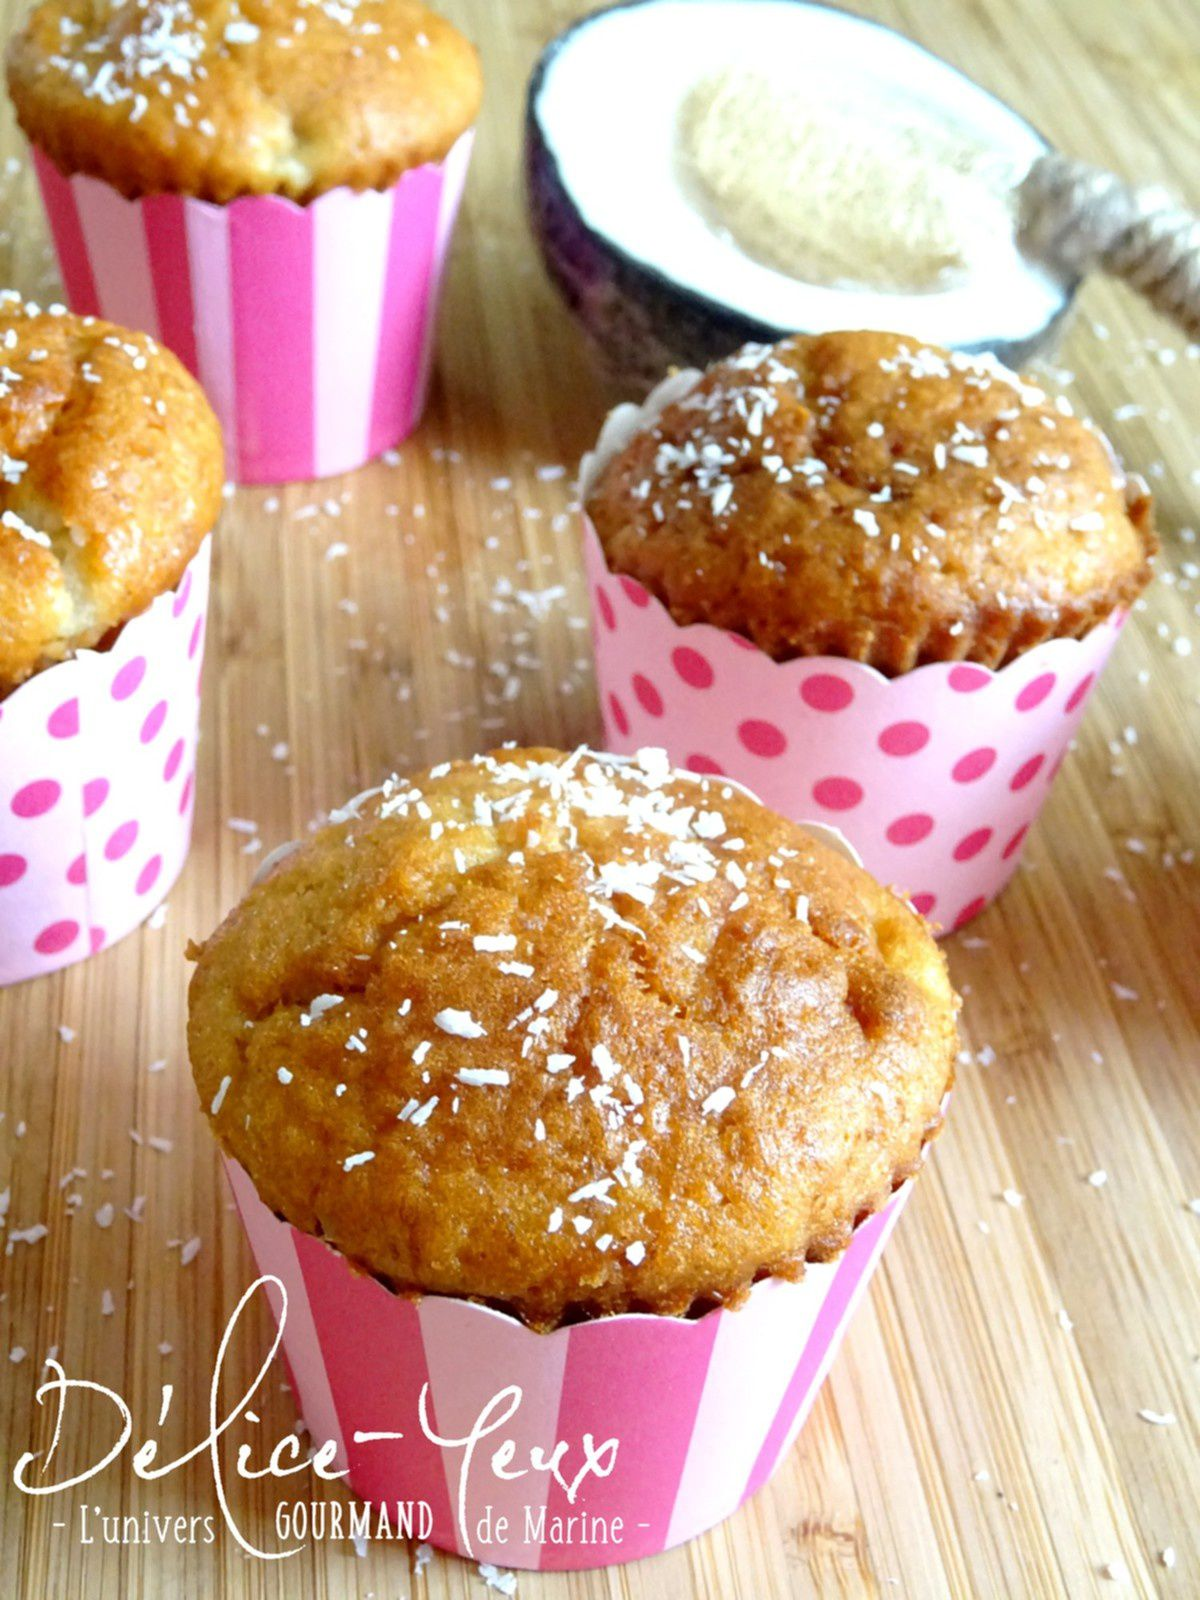 Muffins Kinder Country Muffins Banane Coco Délice Yeux L Univers Gourmand De